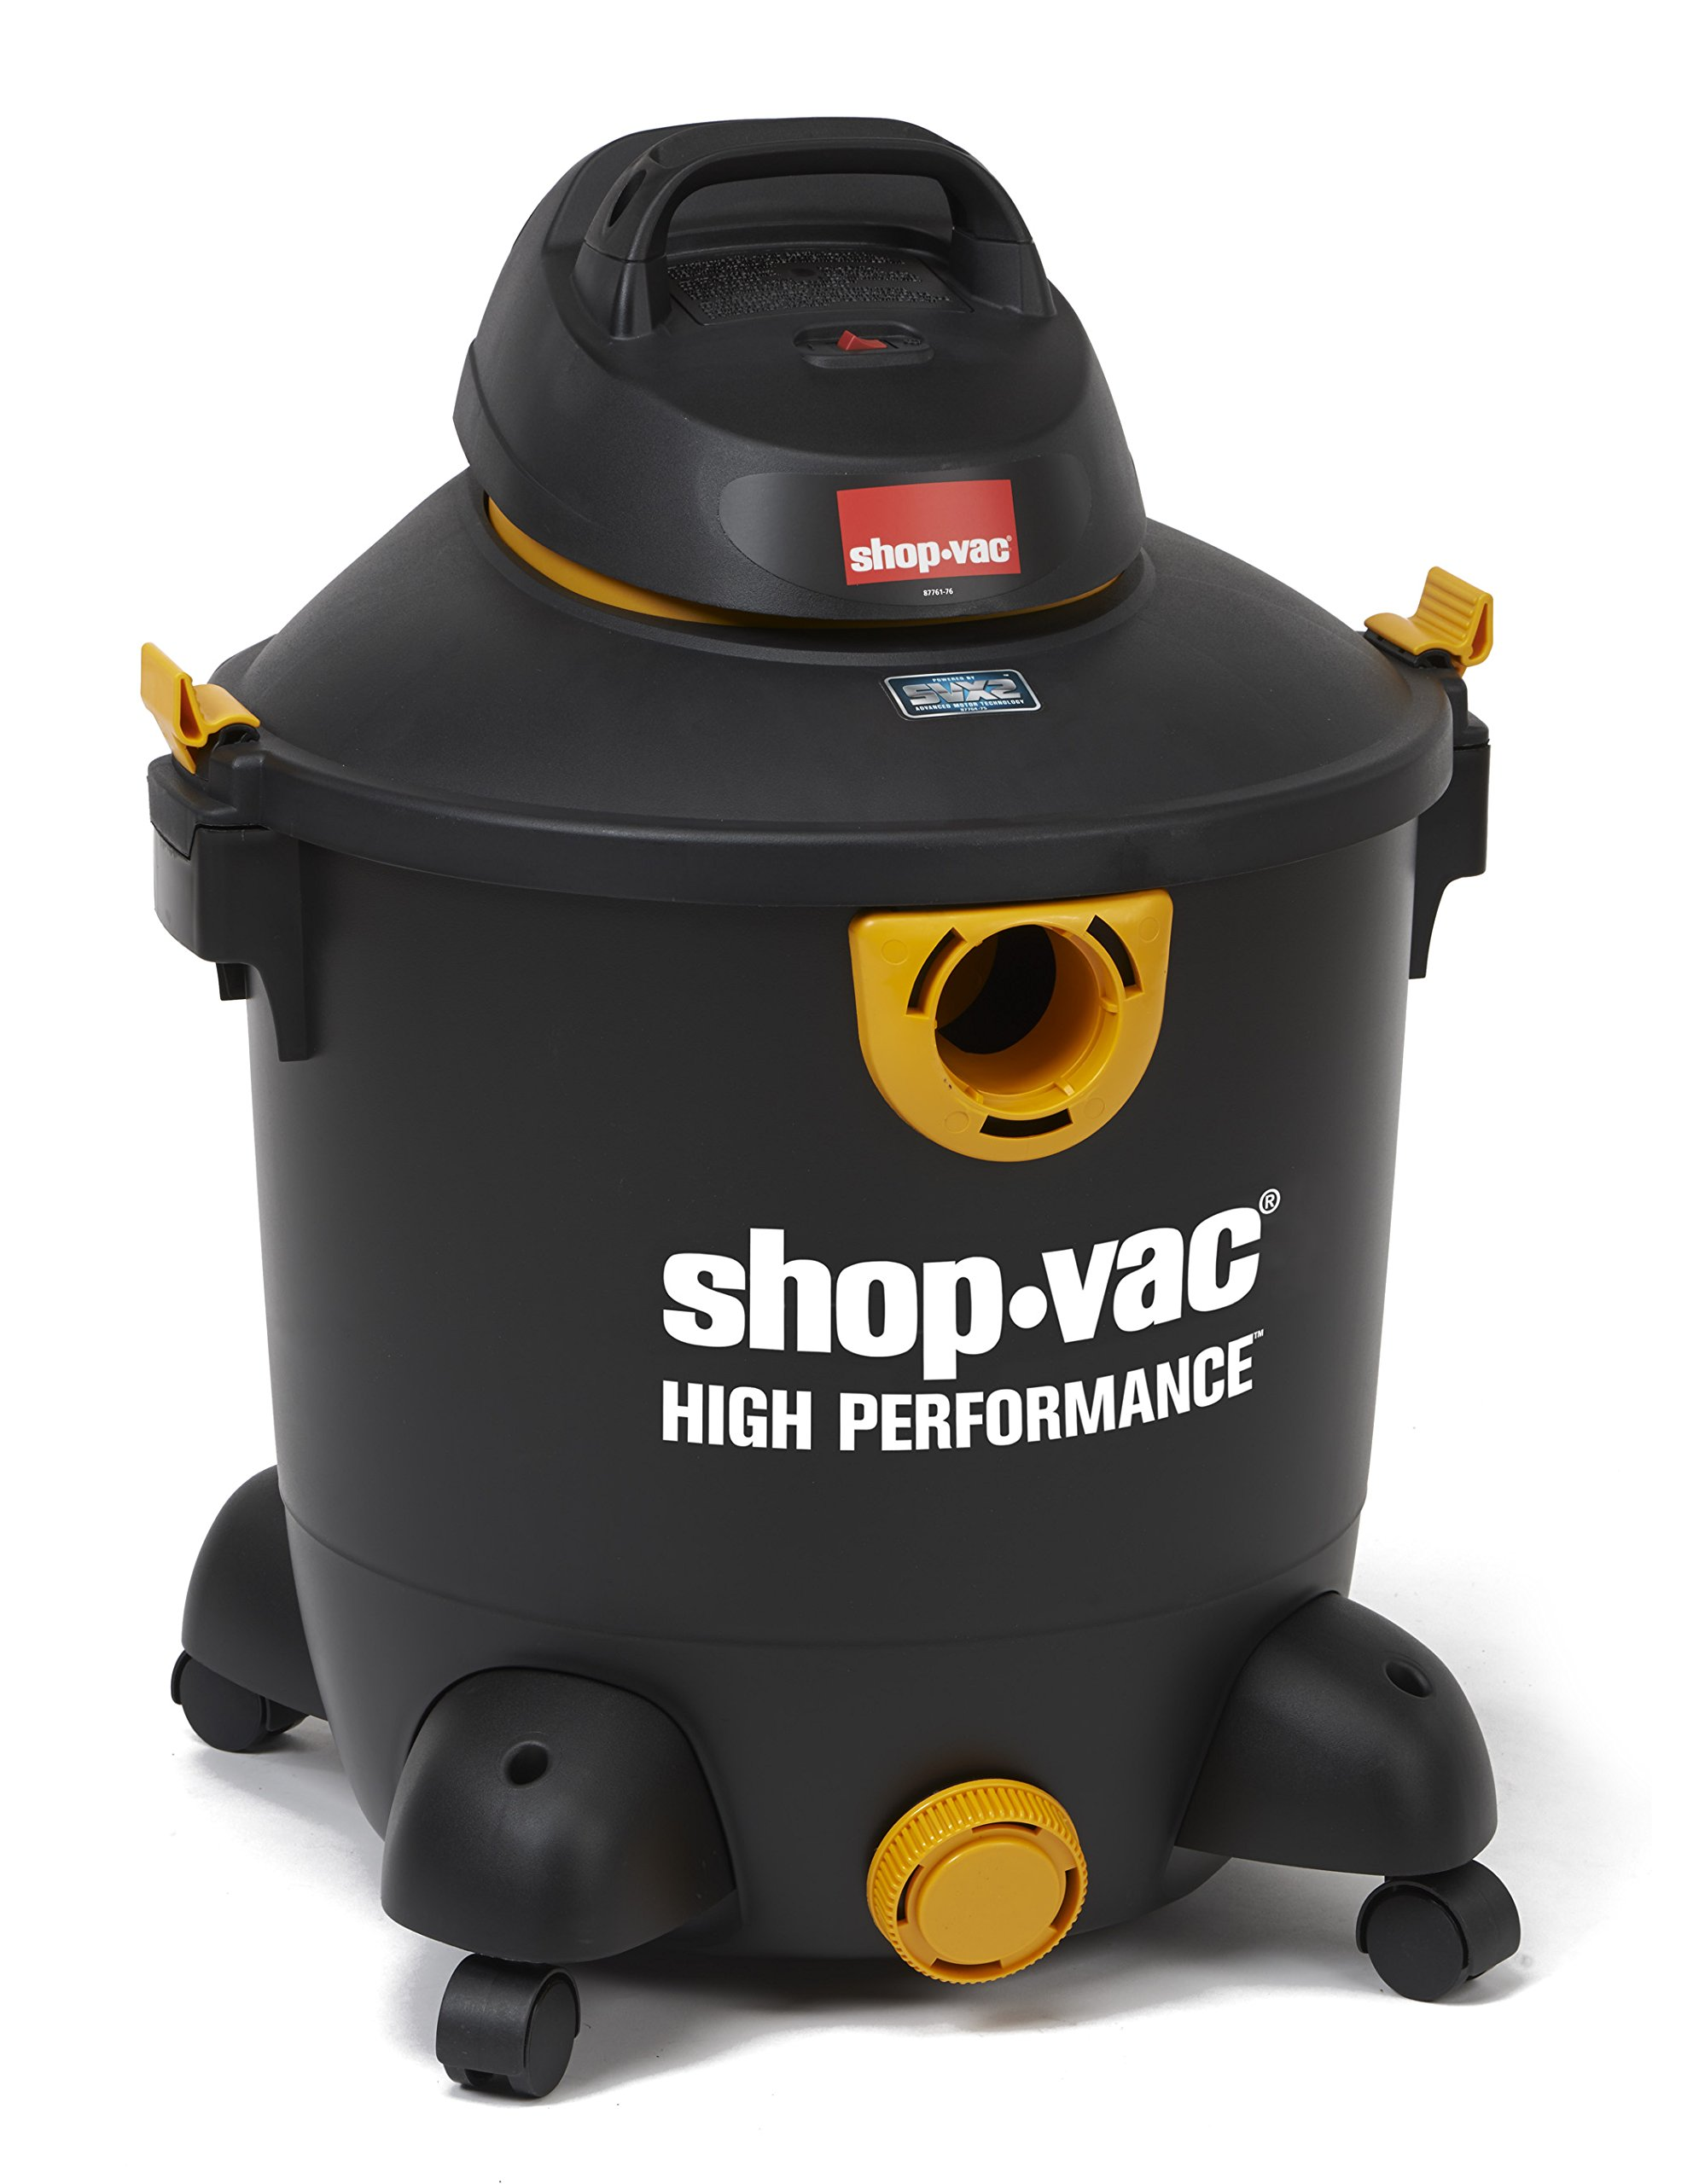 Shop-Vac 5987300 12 gallon 5.5 Peak HP SVX2 High Performance Series Wet Dry Vacuum, Black/Yellow